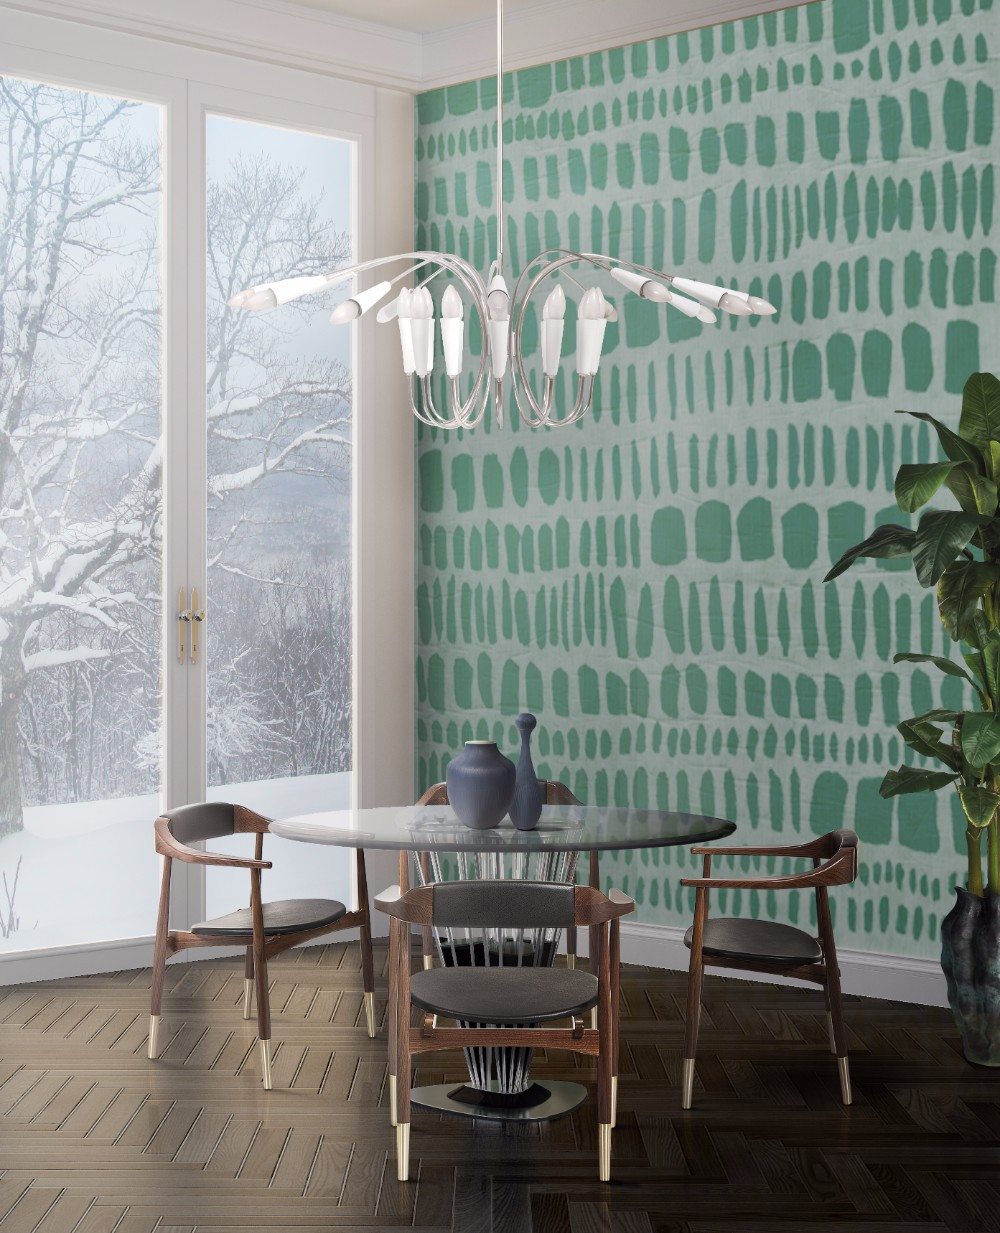 Interior design tips how to clean lights and shades and for Clean interior design